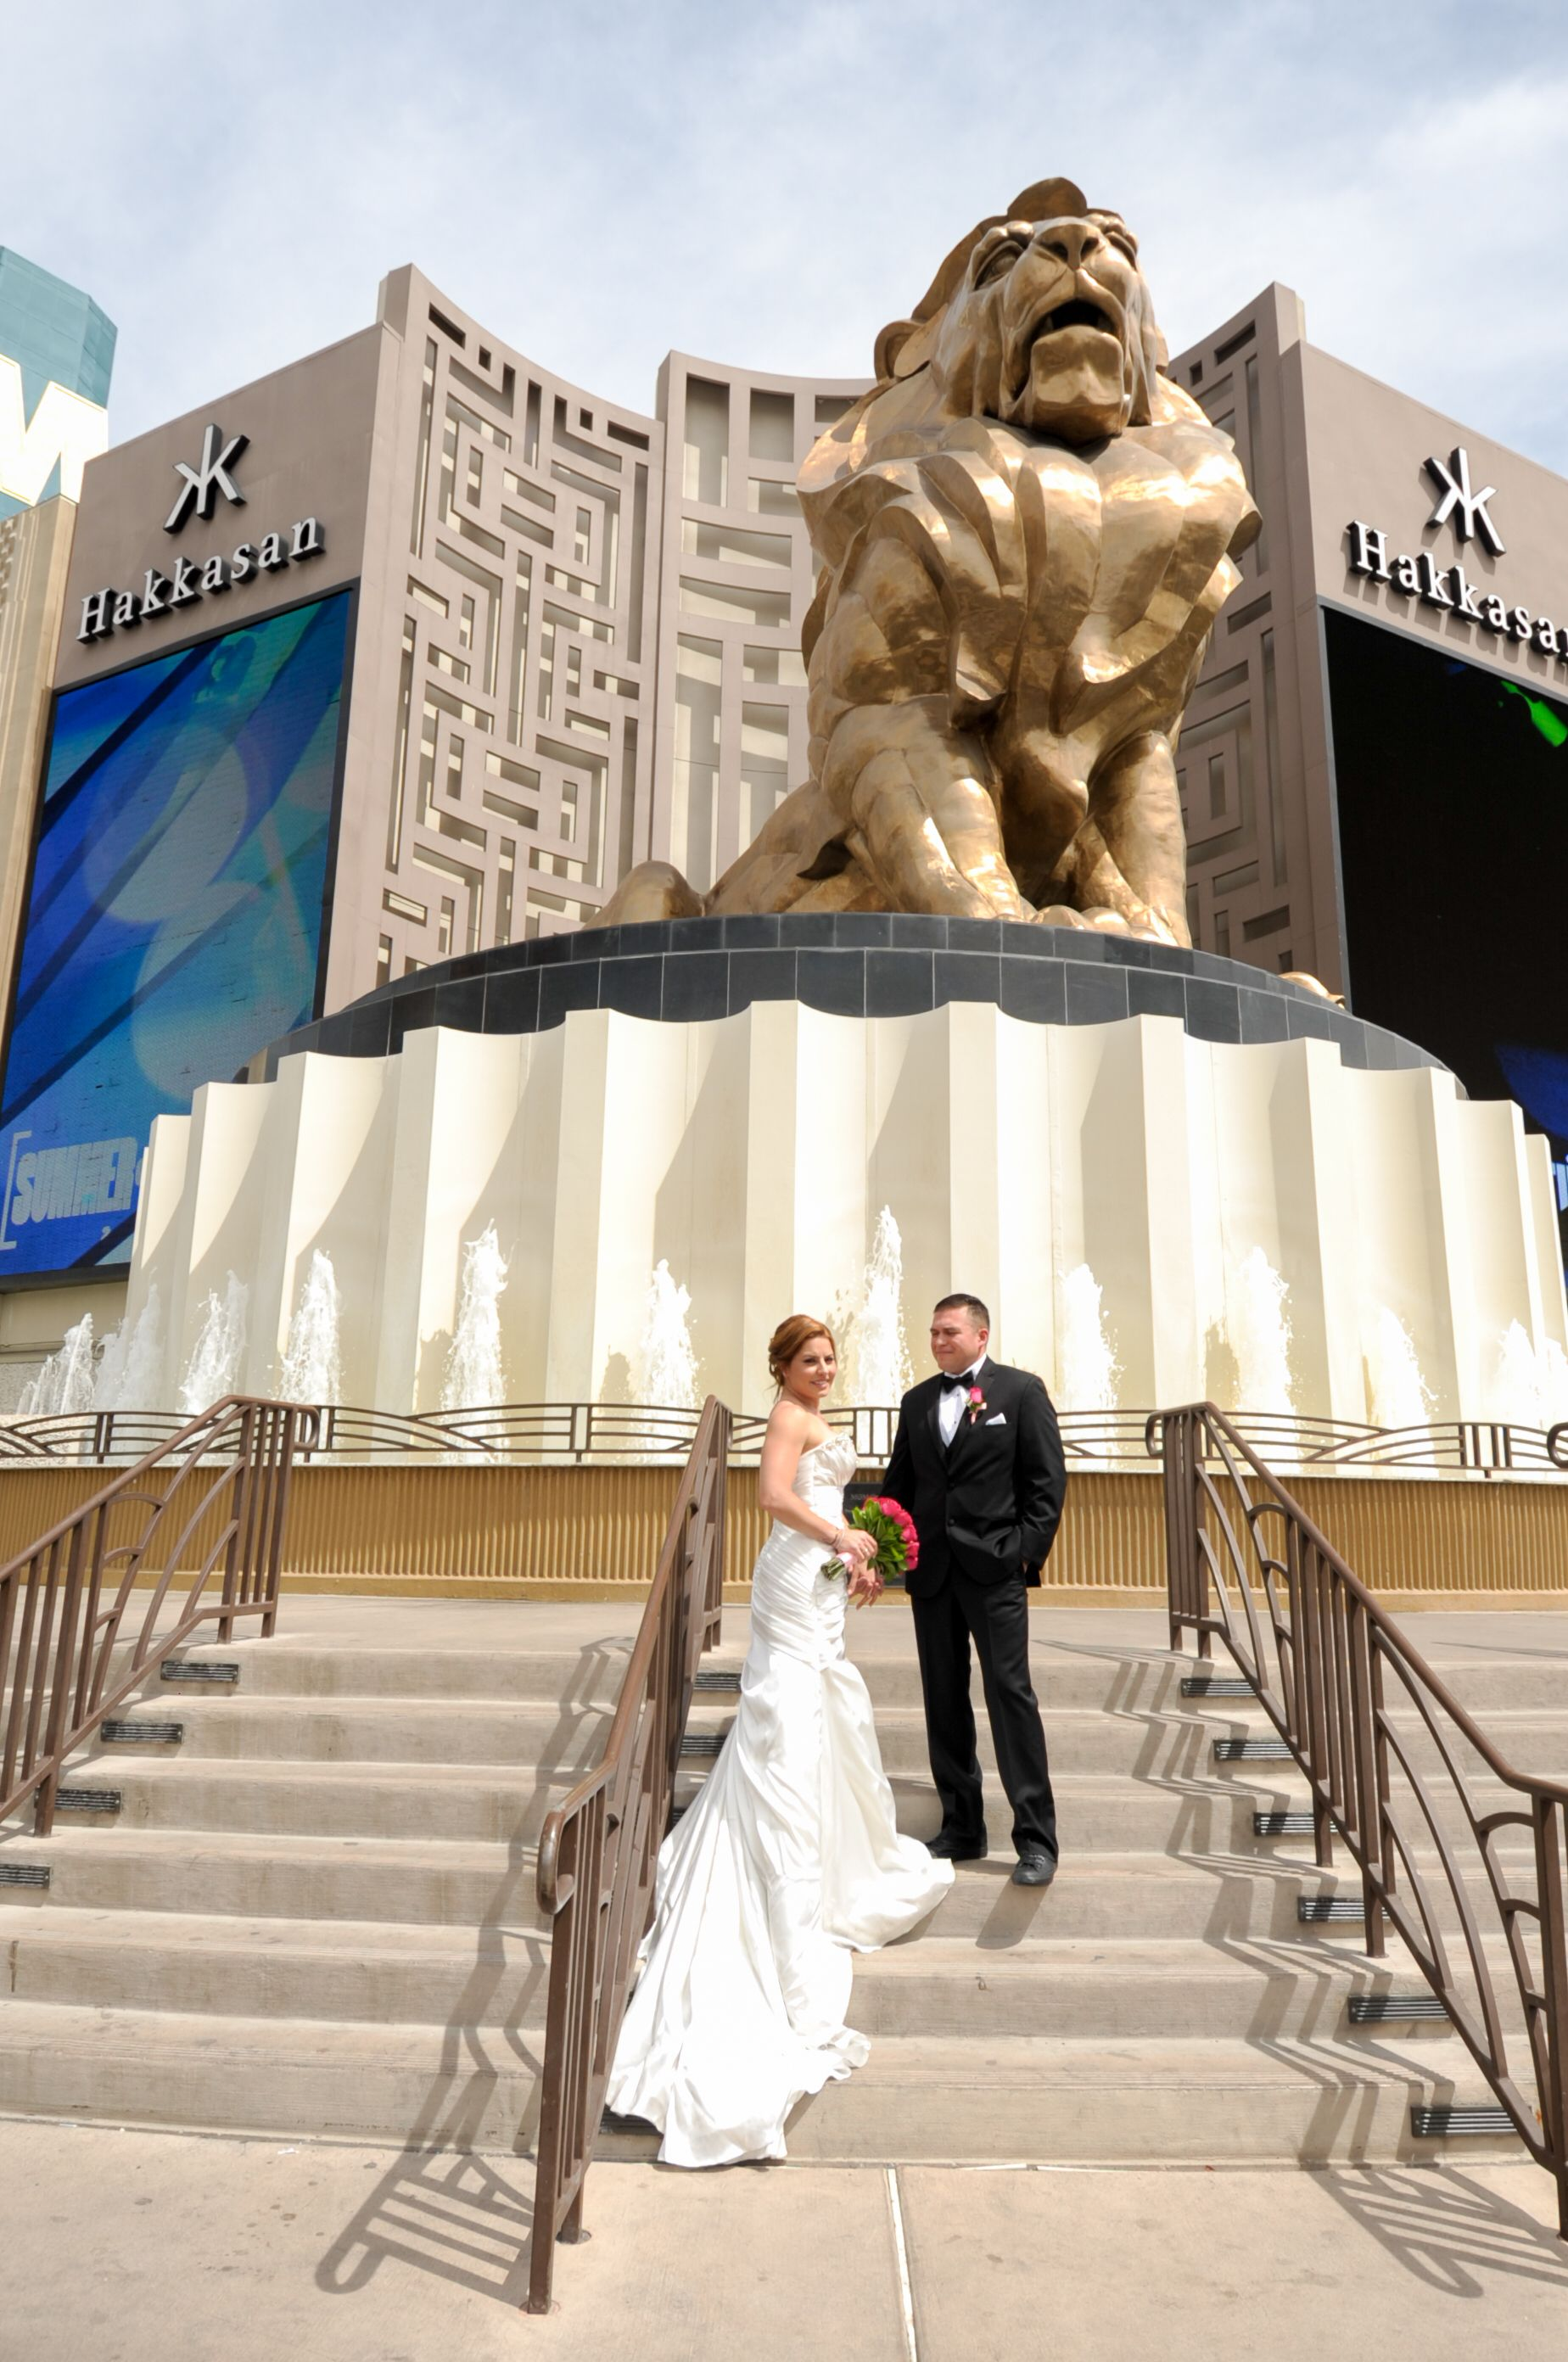 Destination Wedding In Las Vegas Las Vegas Wedding Inspiration Las Vegas Destination Wedding Las Vegas Weddings